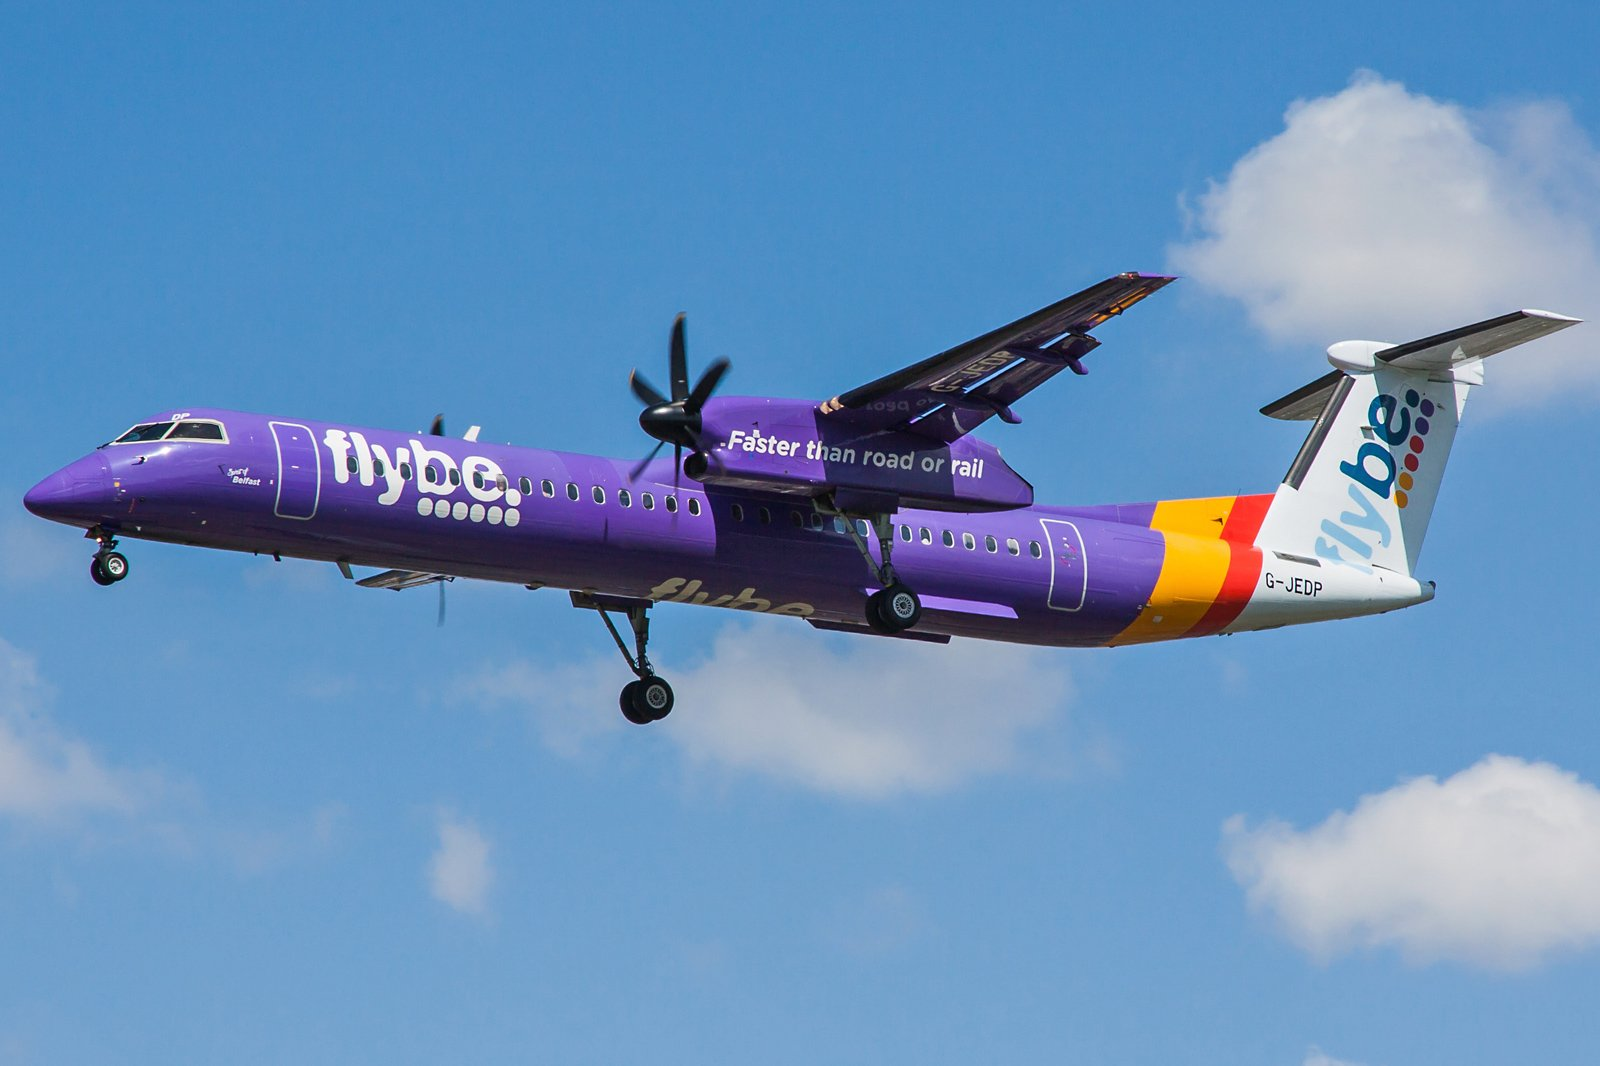 Flybe Bombardier DHC-8-402Q Dash 8 G-JEDP